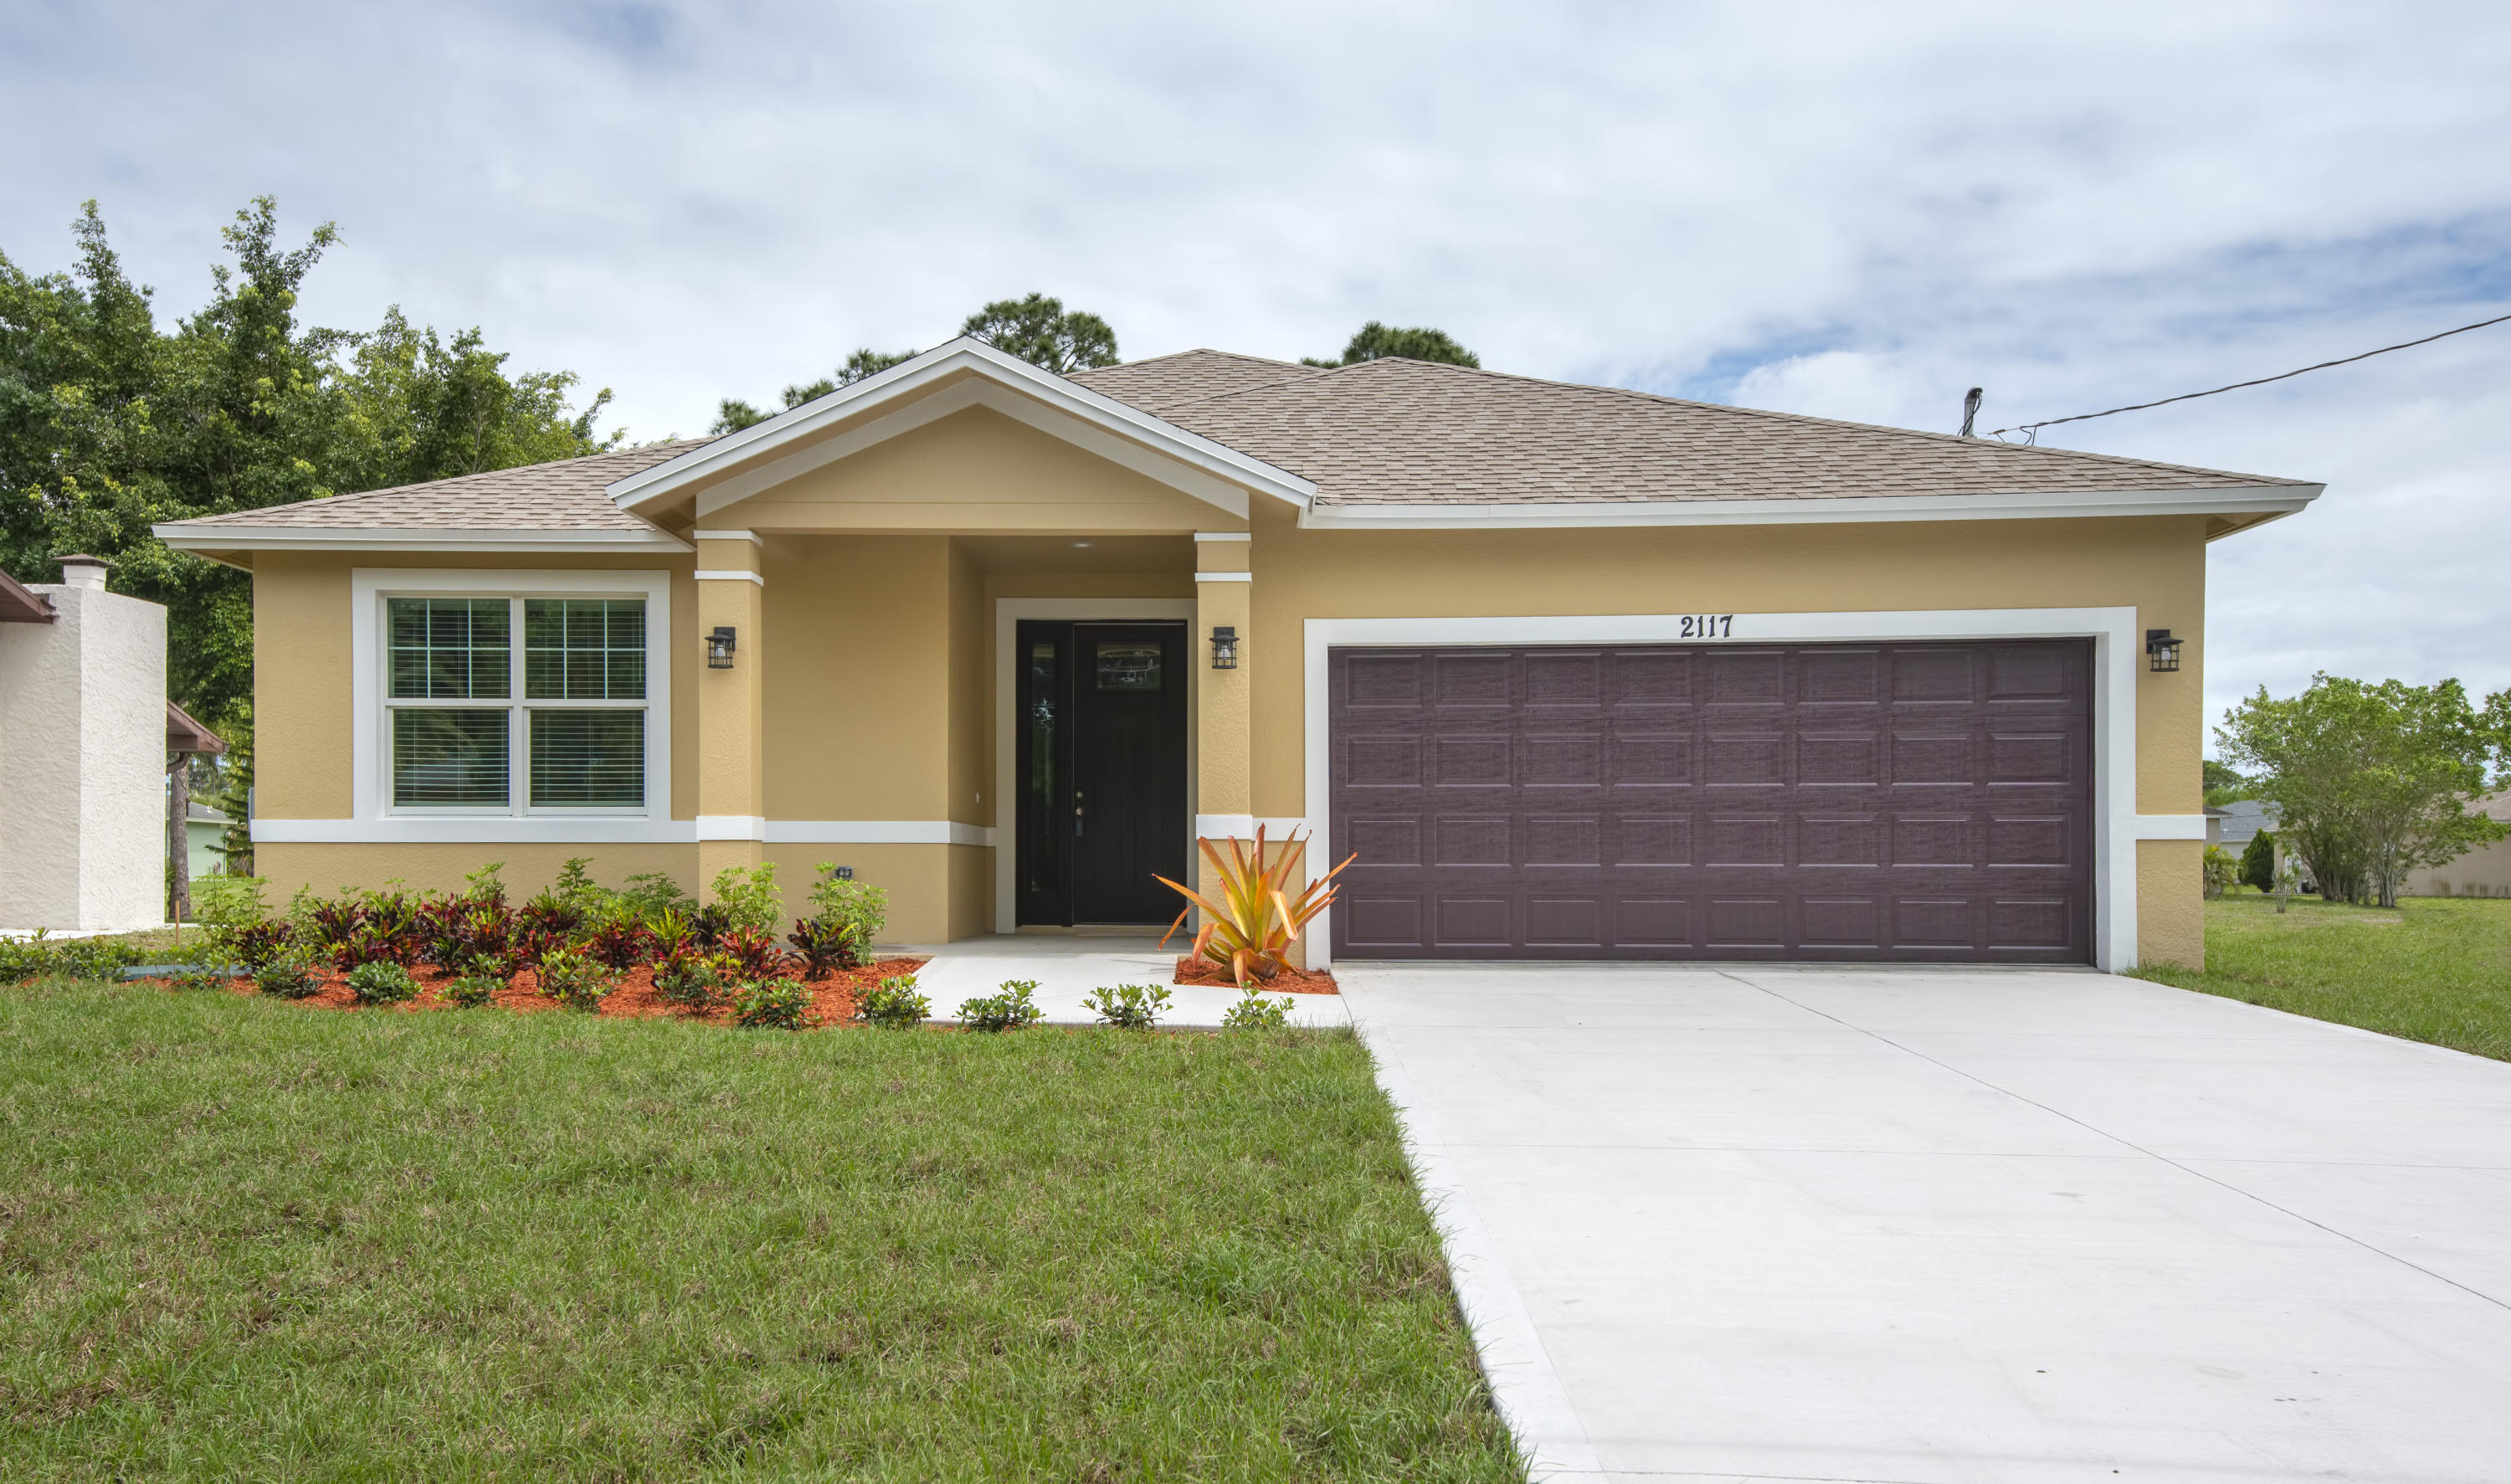 2117 SW Kail Street 34984 - One of Port Saint Lucie Homes for Sale